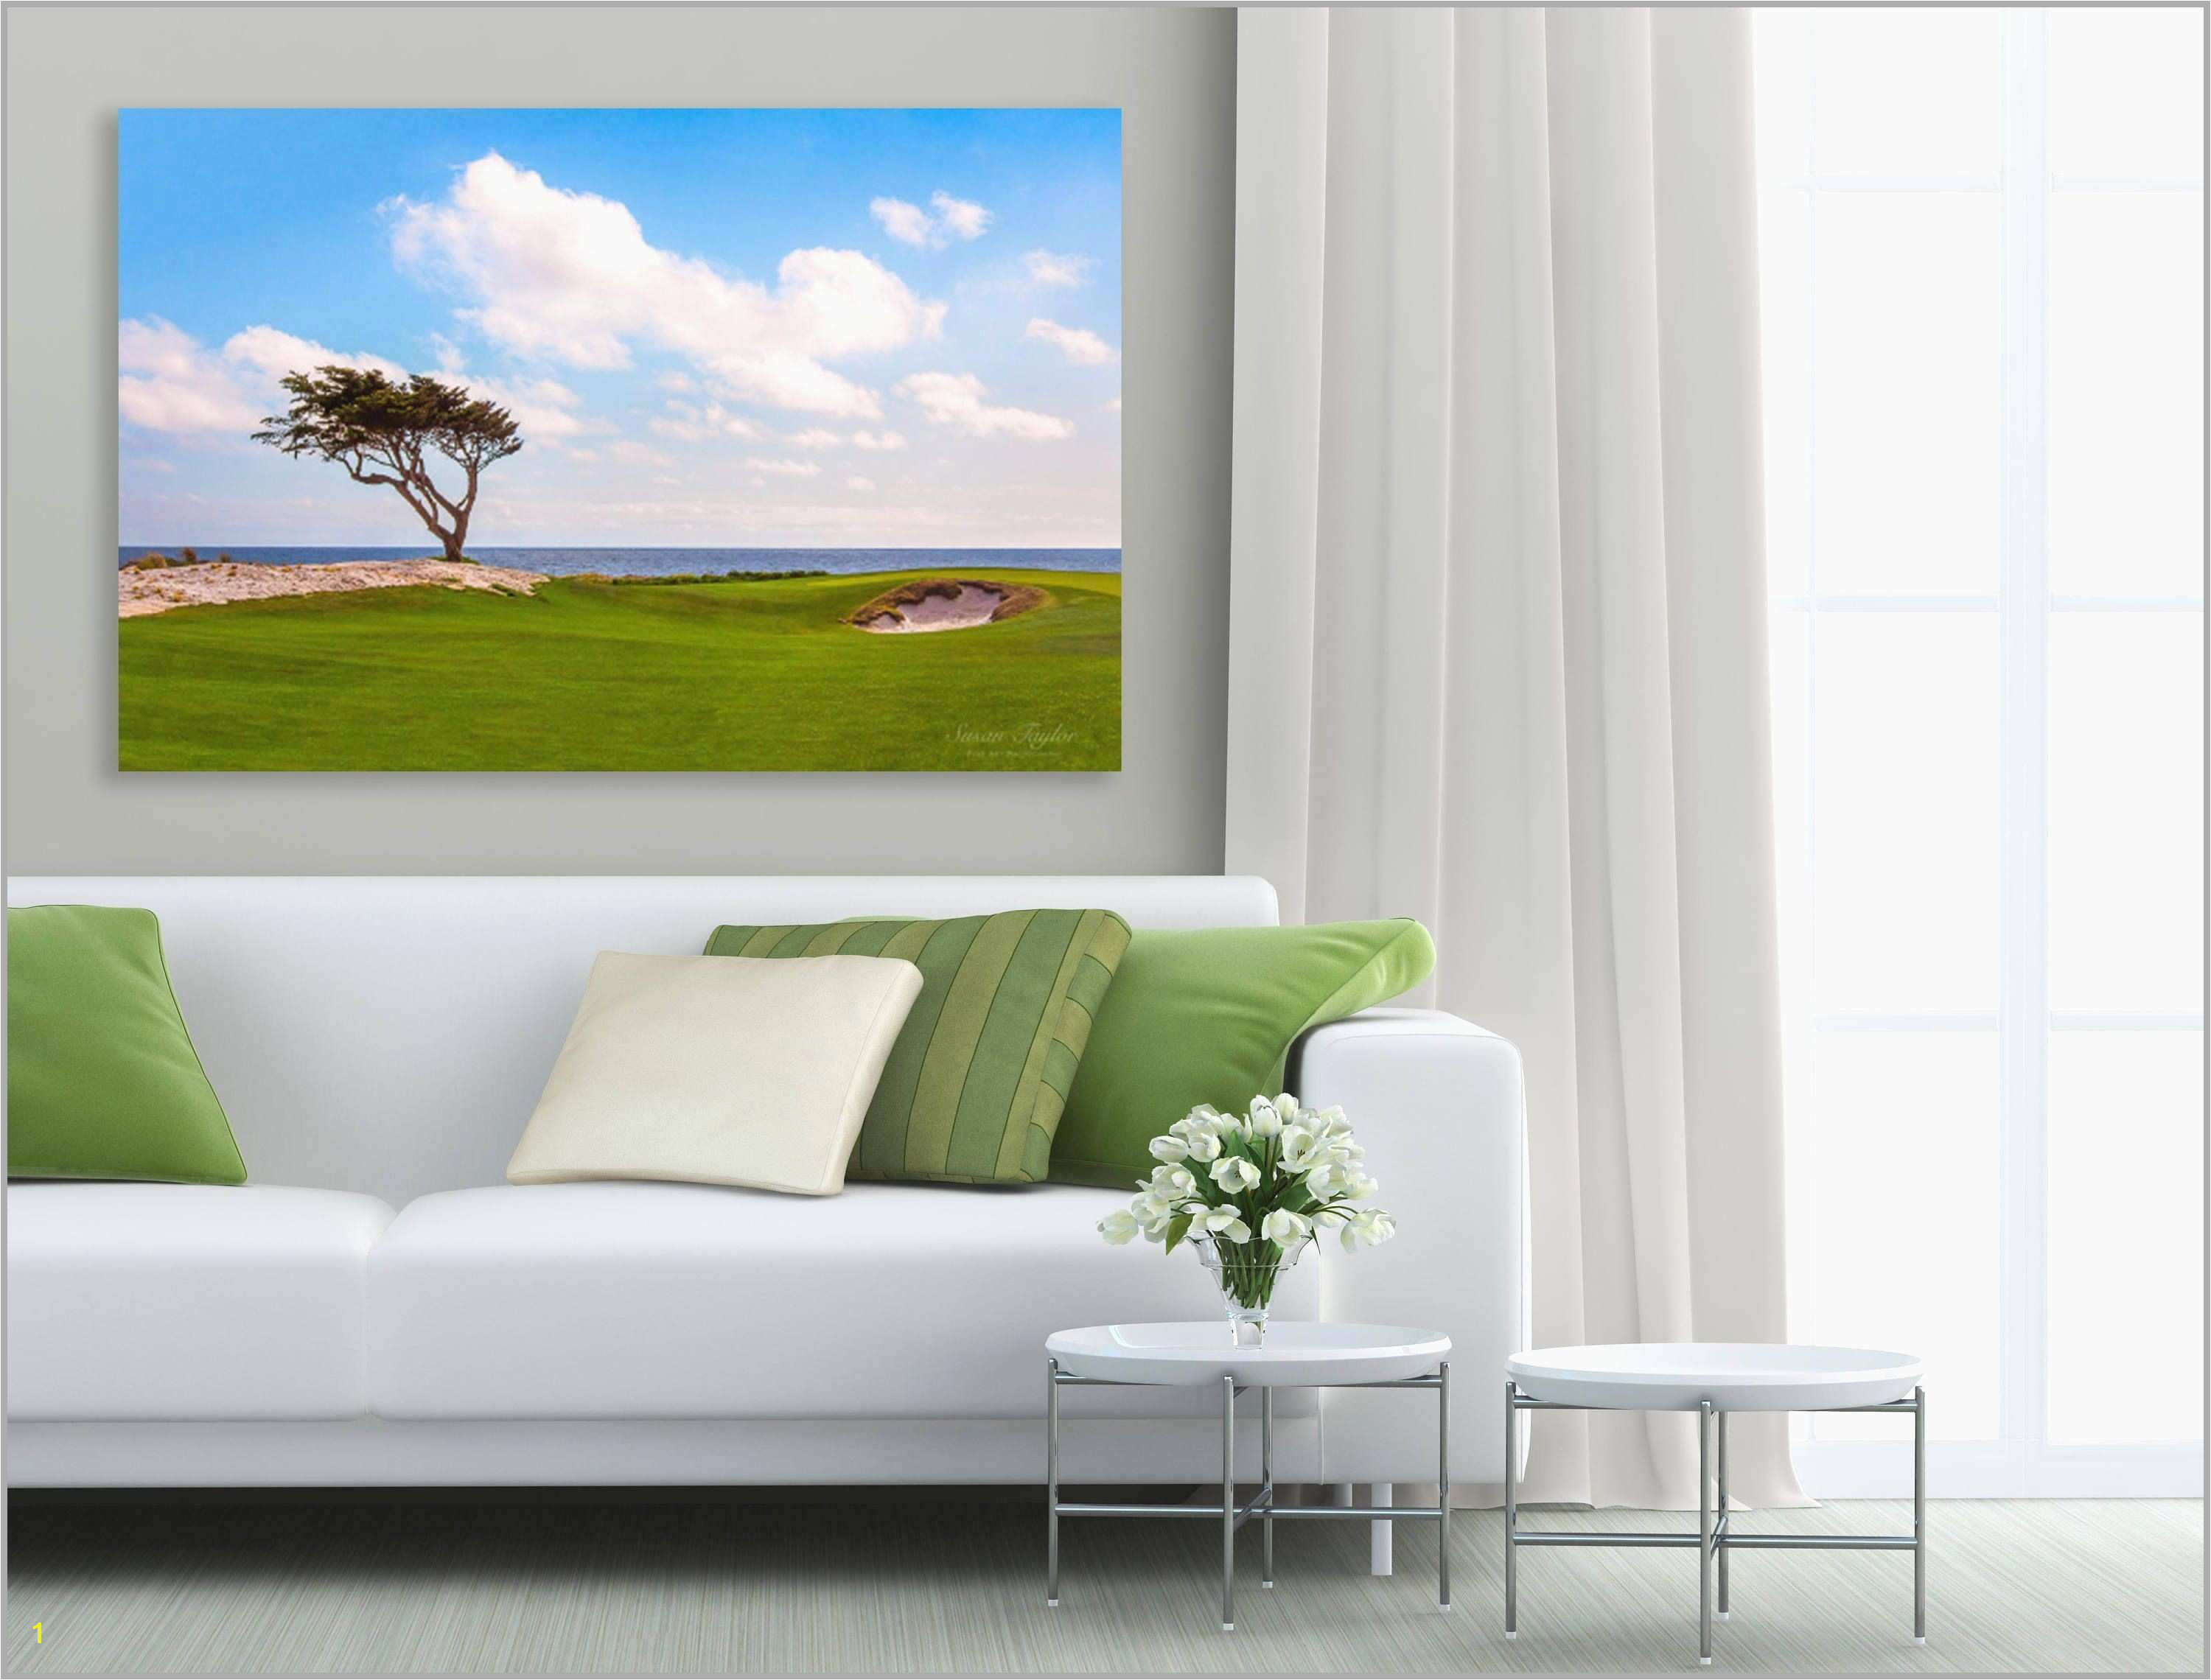 Golf Mural Wallpaper Admirable 24 New Golf Wall Art Golf Mural Wallpaper Inspirational the Doors